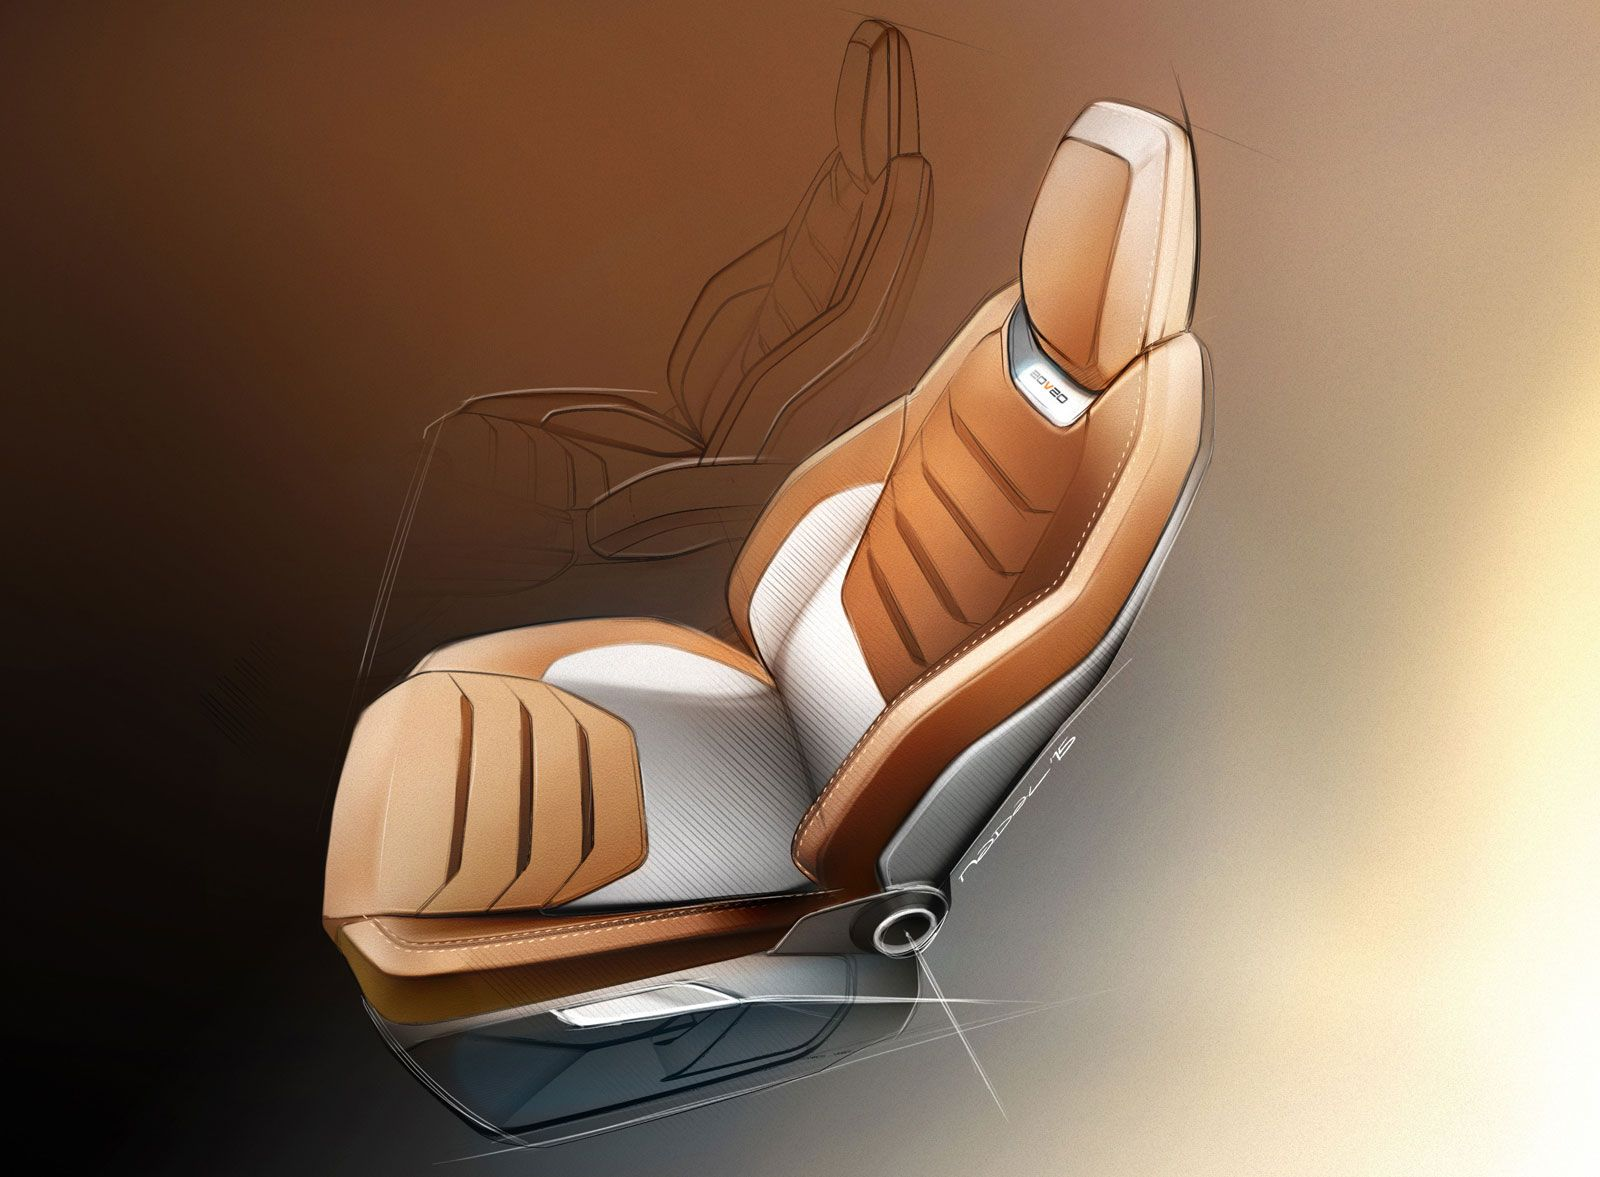 Seat 20v20 Concept Interior Design Sketch Seat Car Body Design